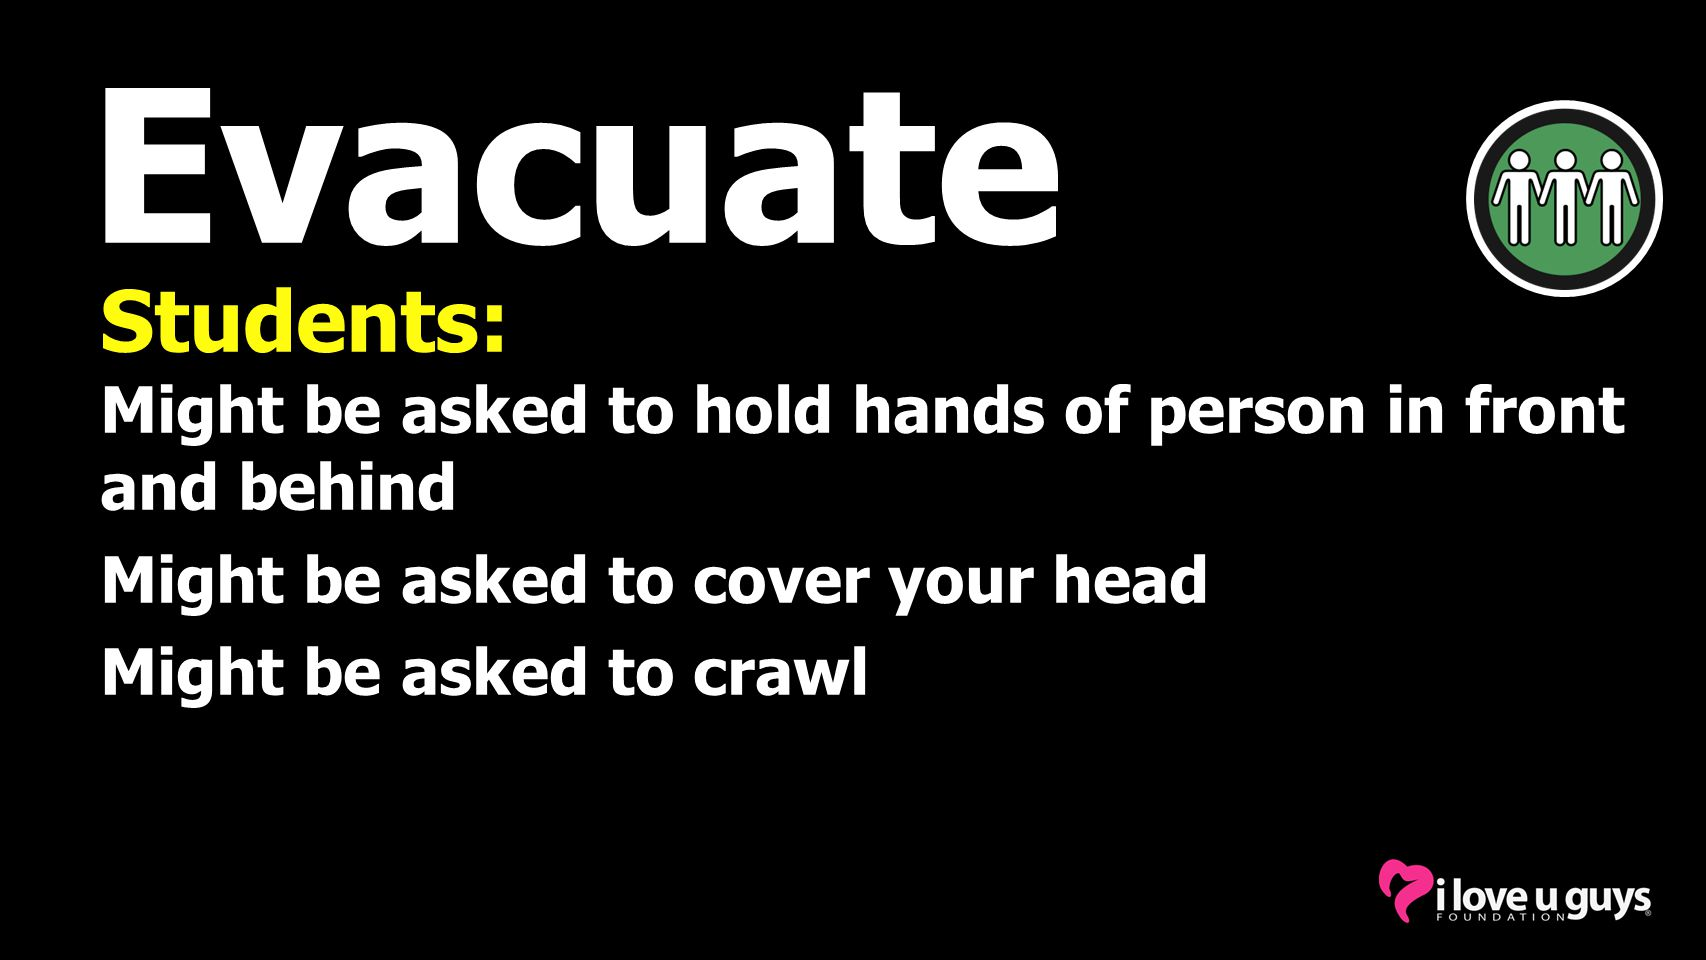 Evacuate Students: Might be asked to hold hands of person in front and behind Might be asked to cover your head Might be asked to crawl